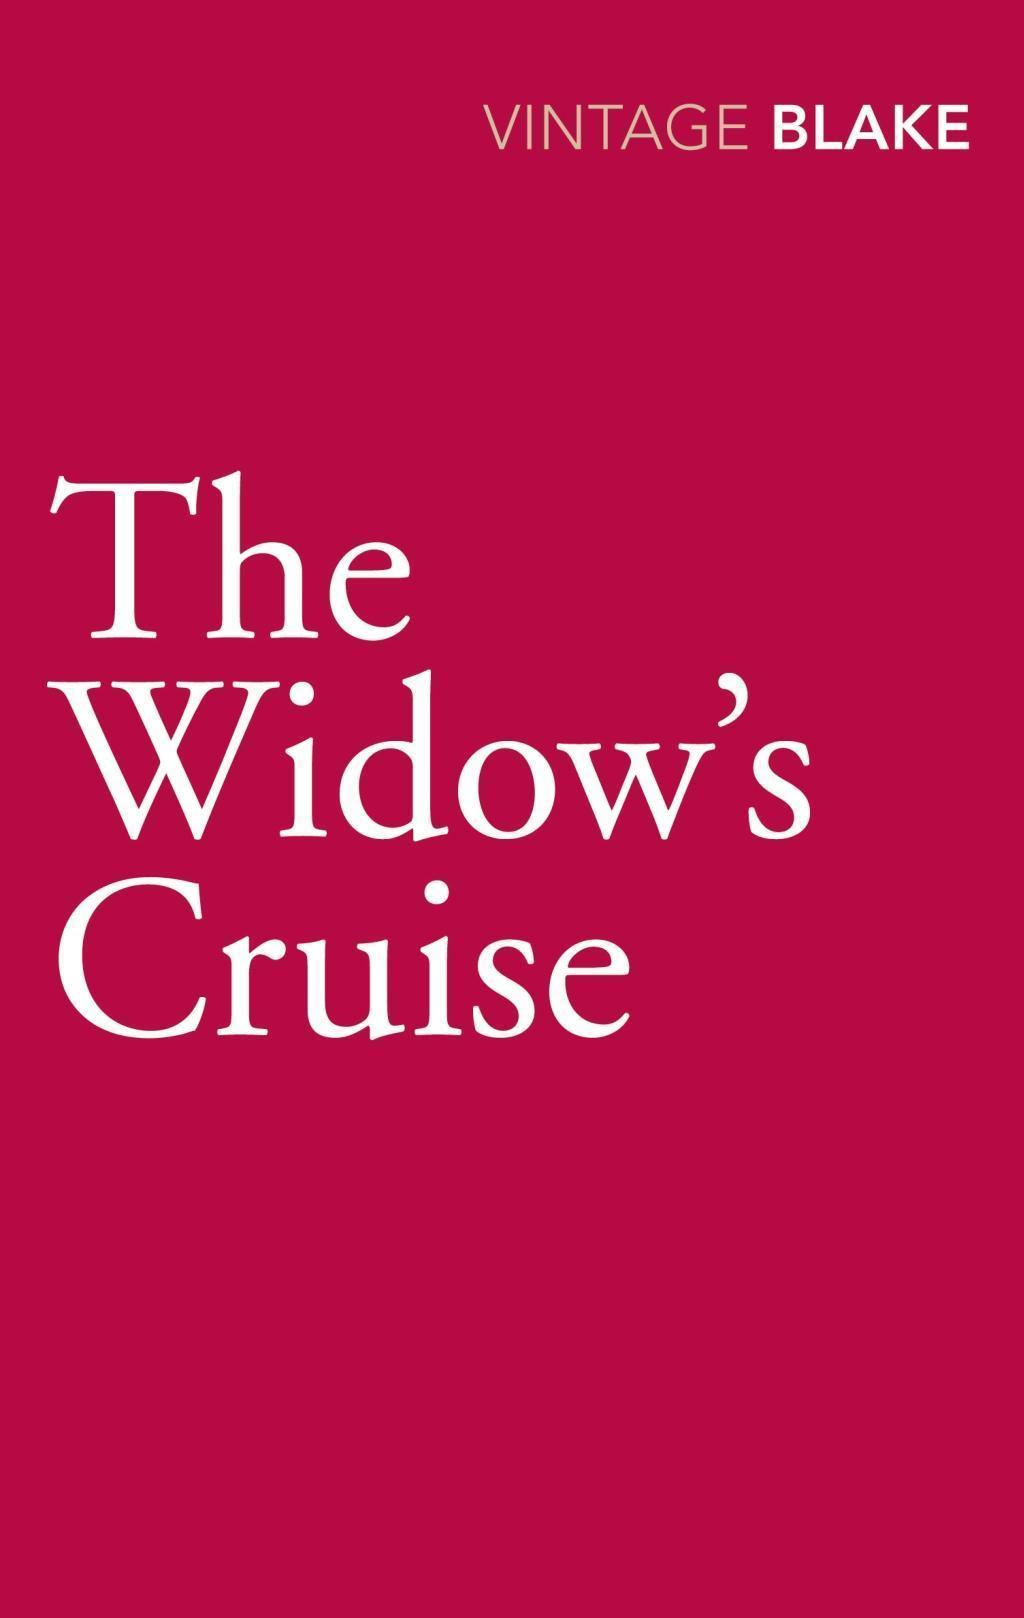 The Widow's Cruise